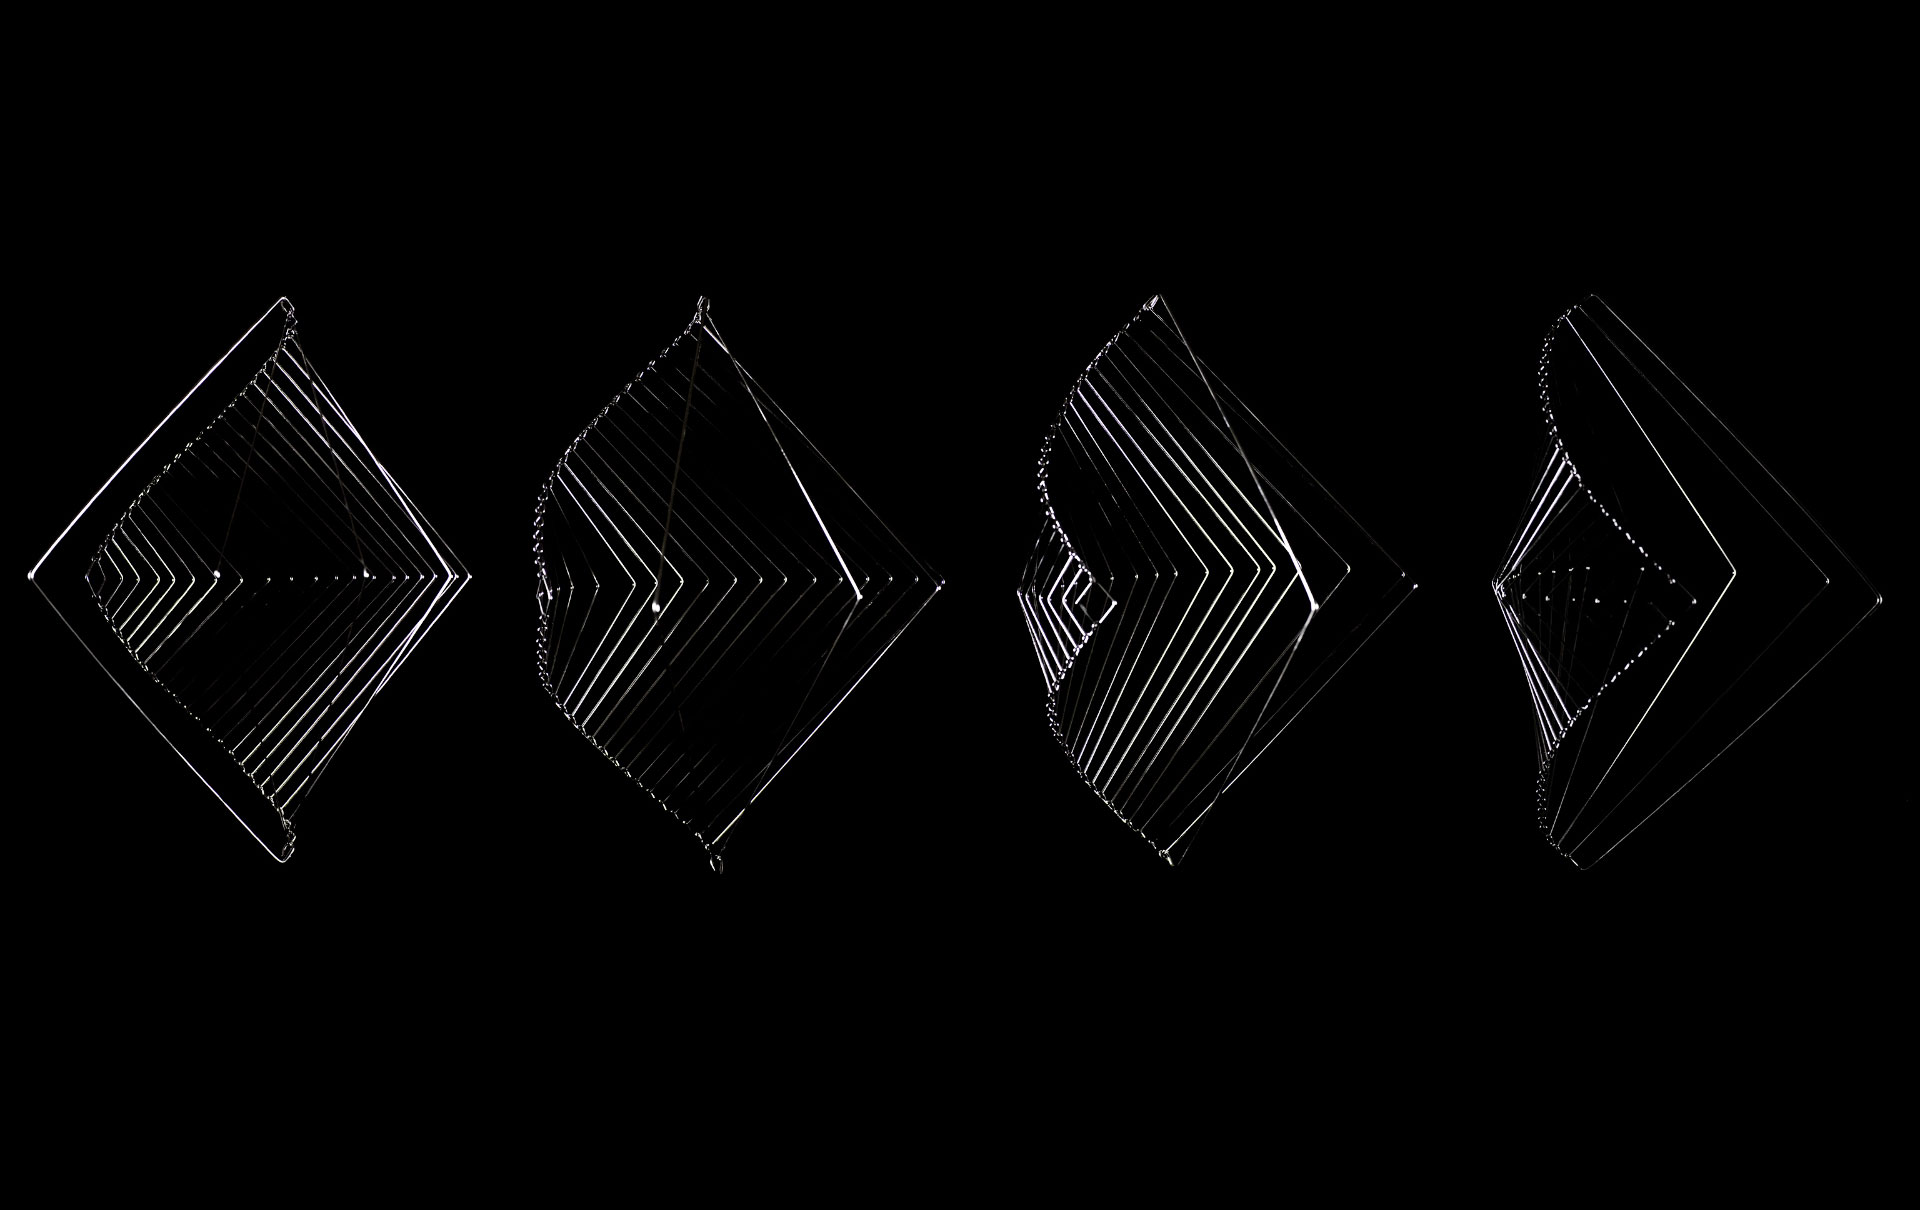 Still images of the Square Wave kinetic mobile